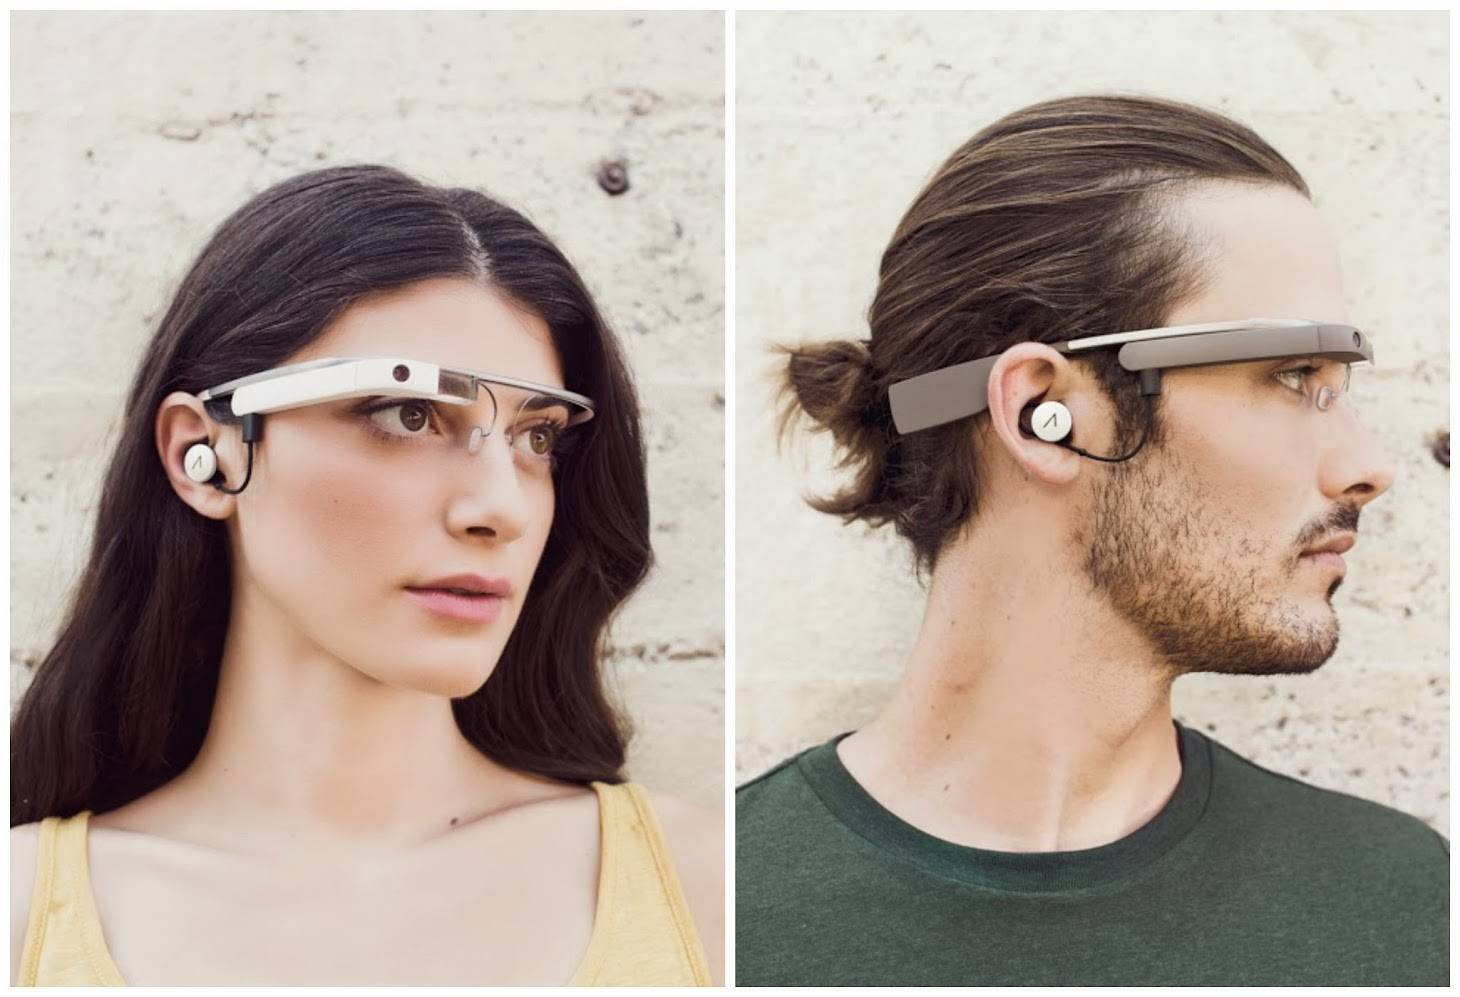 Google Glass version 2.0 earbud